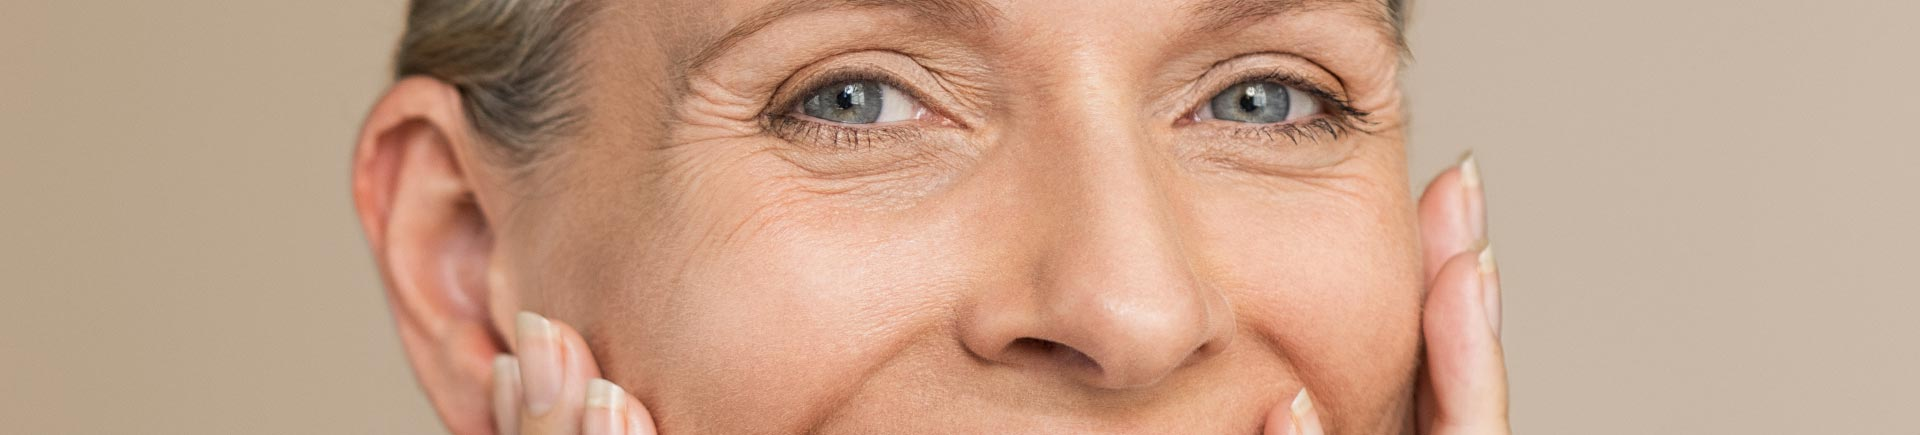 Face of middle-aged caucasian woman